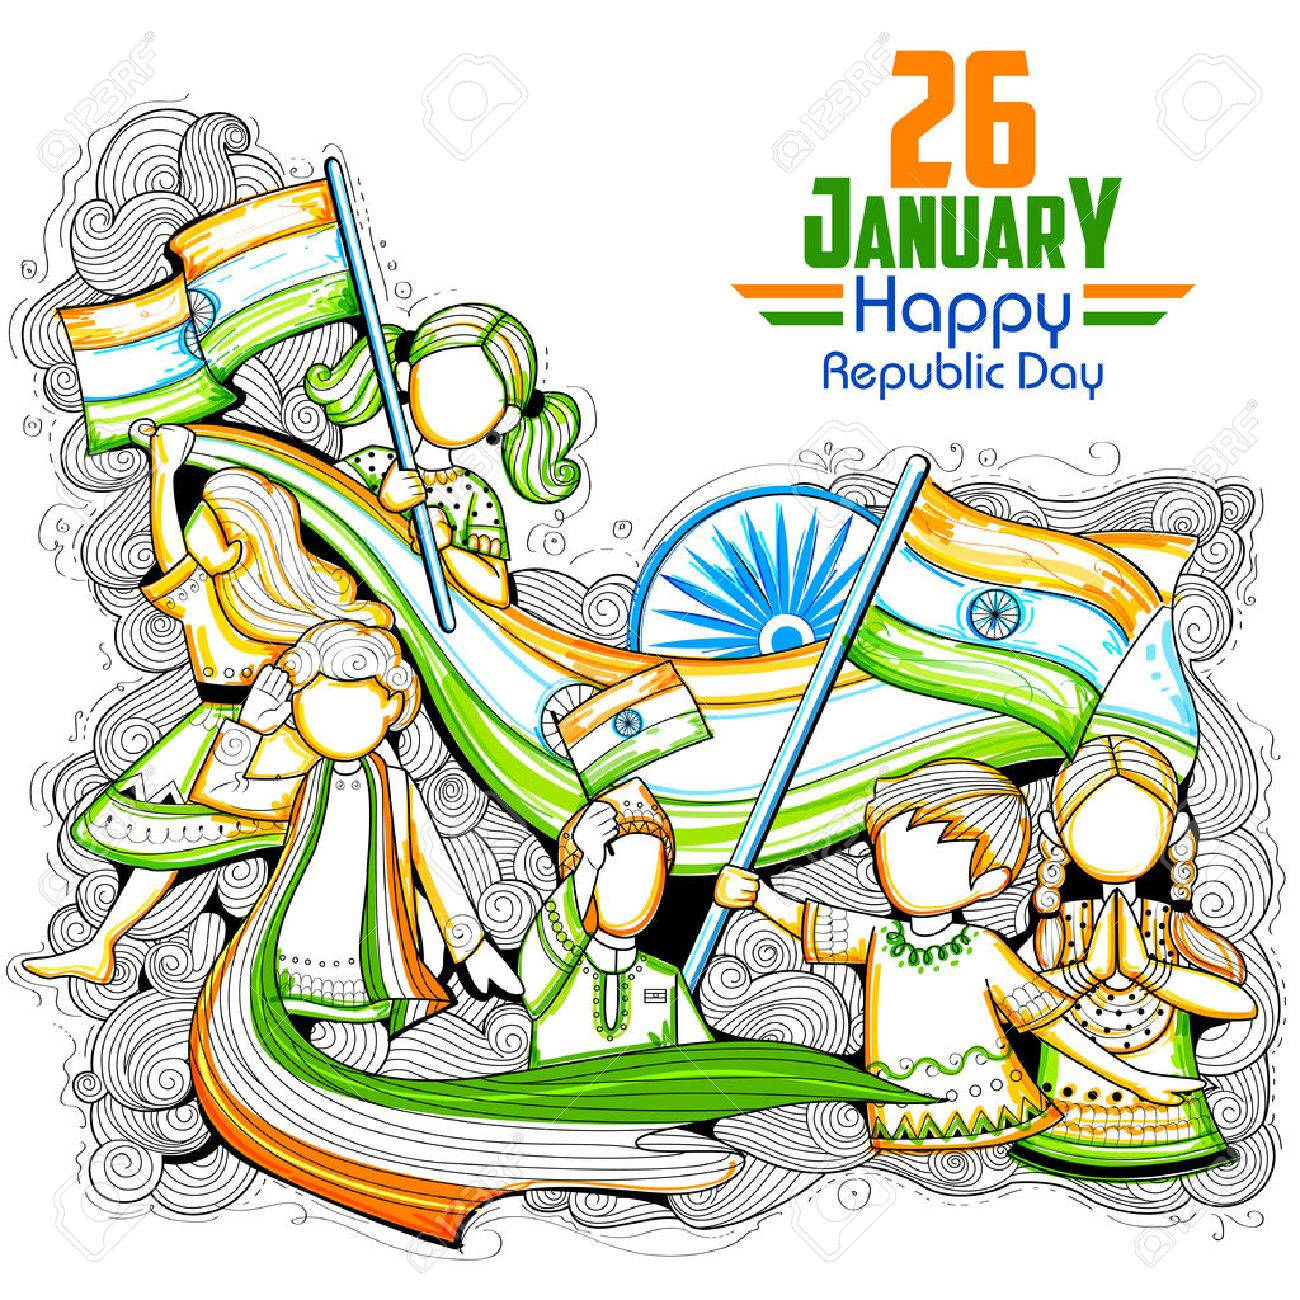 Indian kids waving tricolor flag celebrating Republic Day of India - 69256789